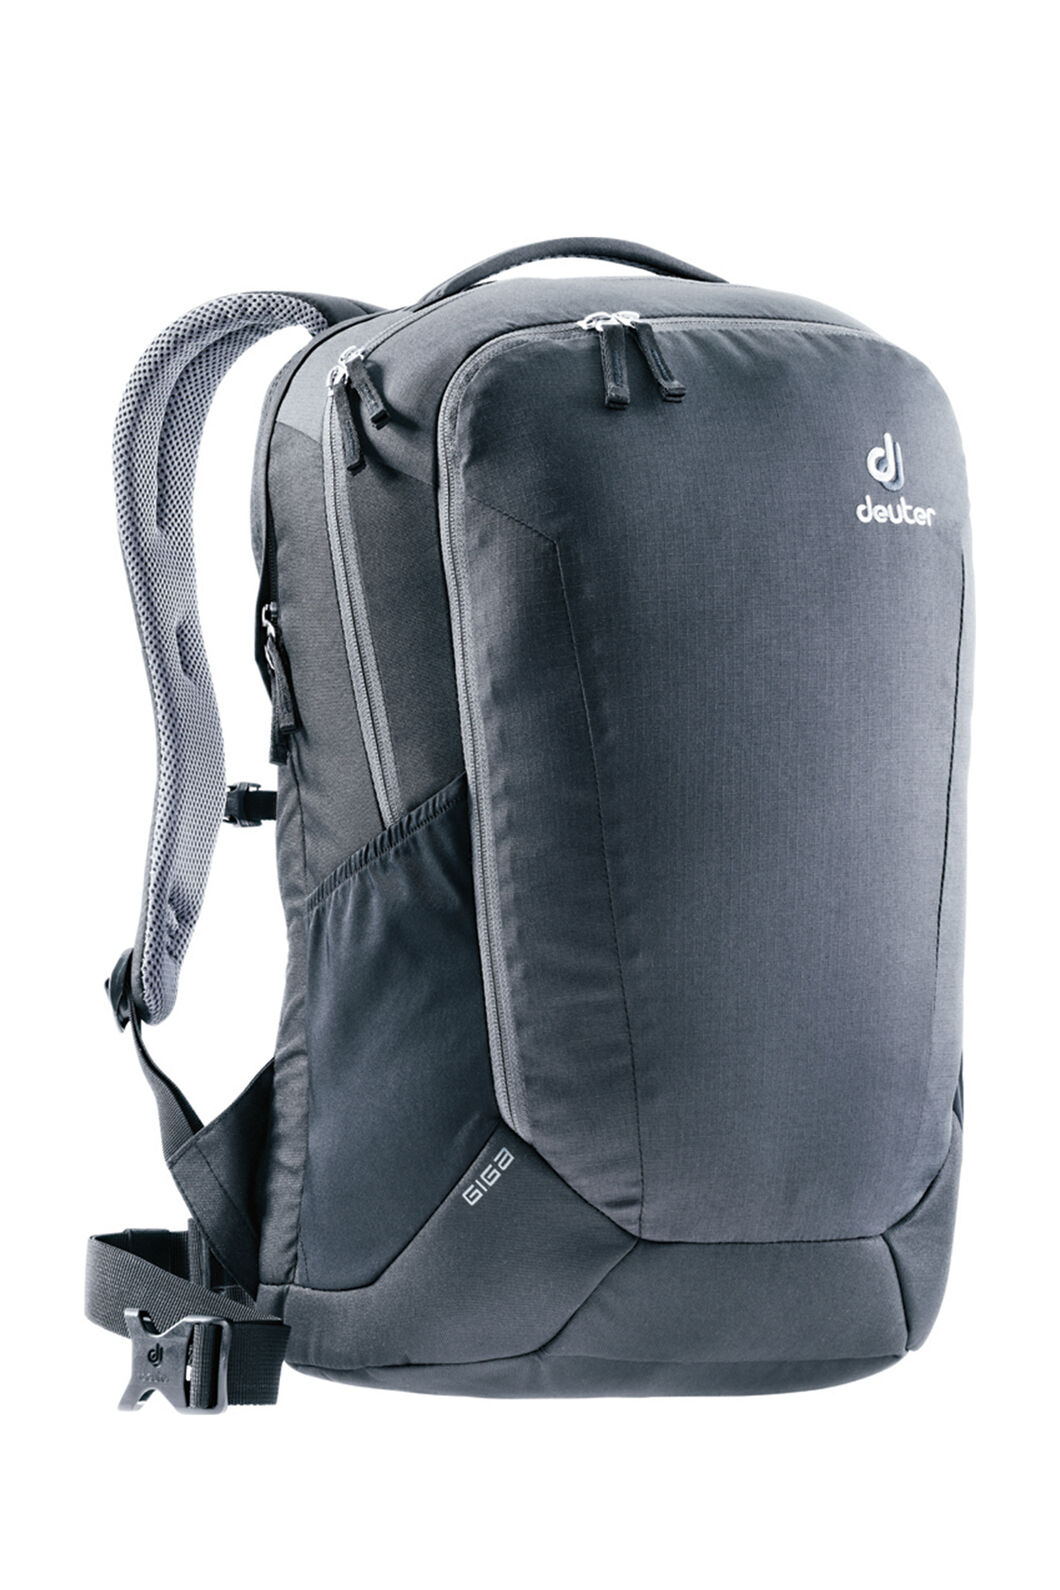 Deuter Giga Travel Pack 28L, Black, hi-res